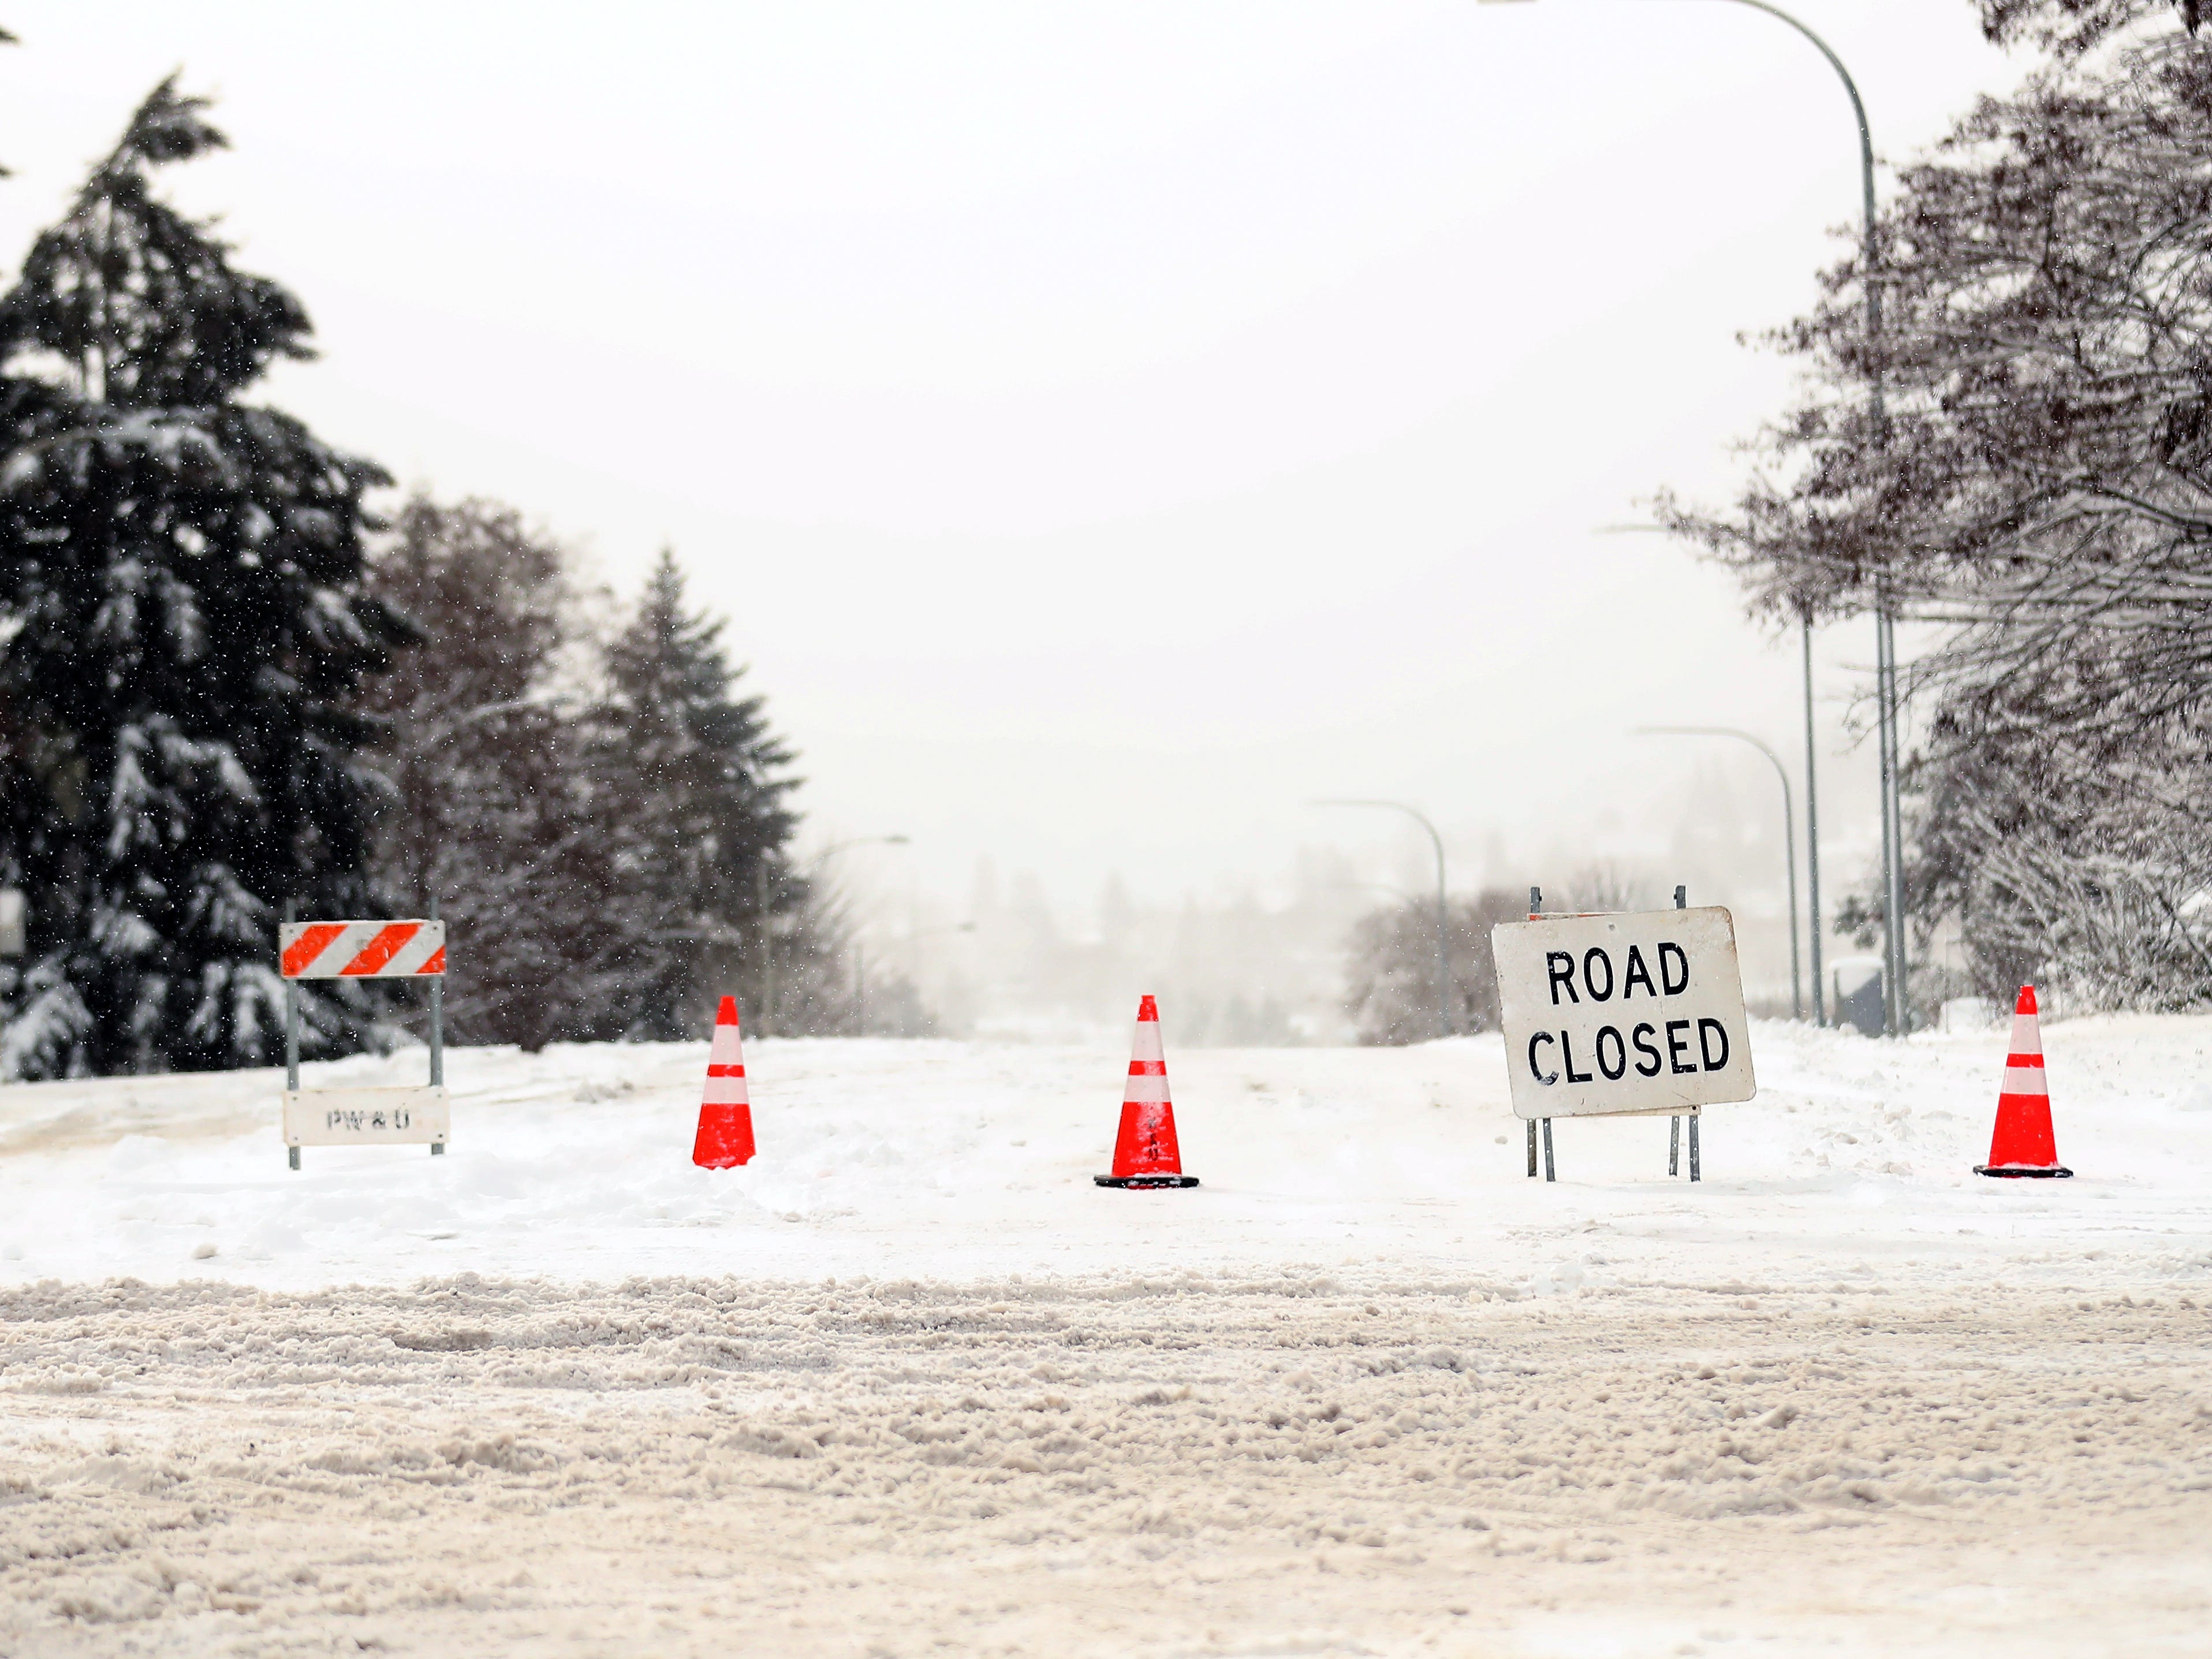 The Warren Ave Bridge remained closed on Saturday, February 9, 2019.